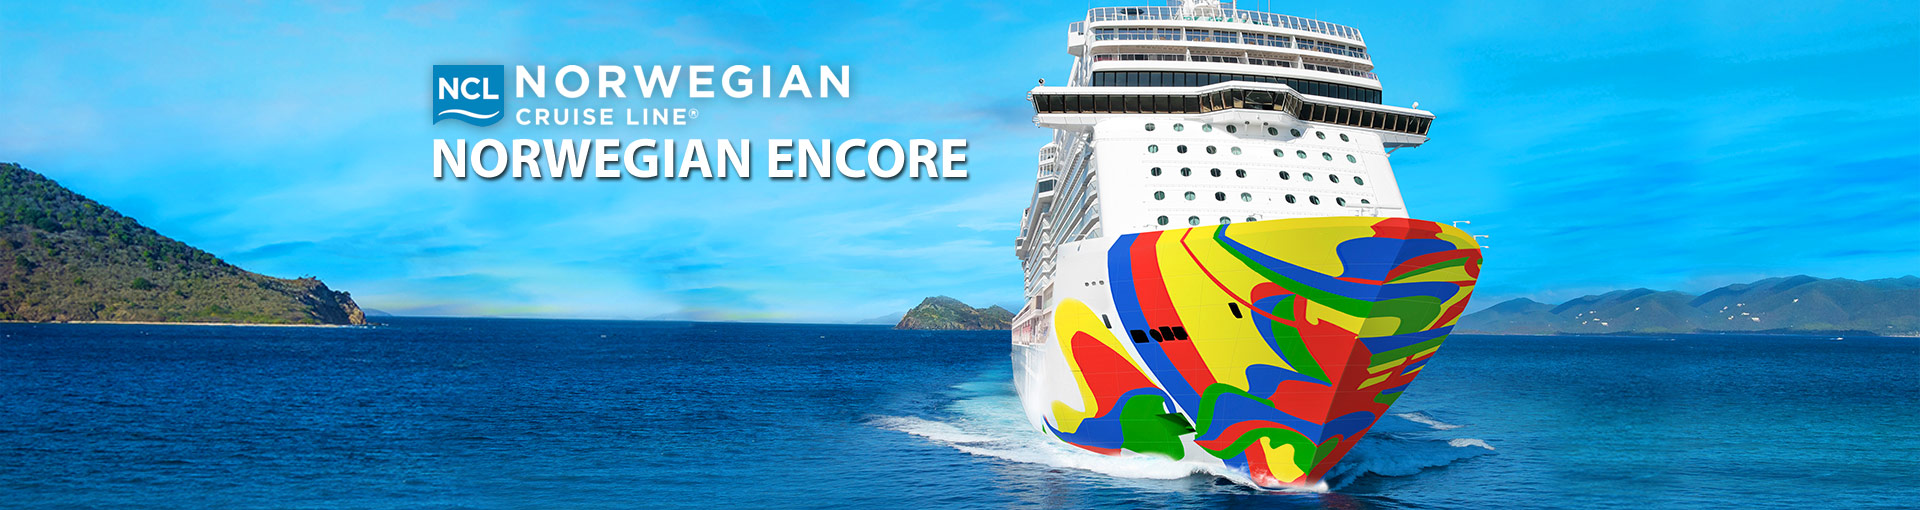 Norwegian Encore Cruise Ship 2019 And 2020 Norwegian Encore Destinations Deals The Cruise Web